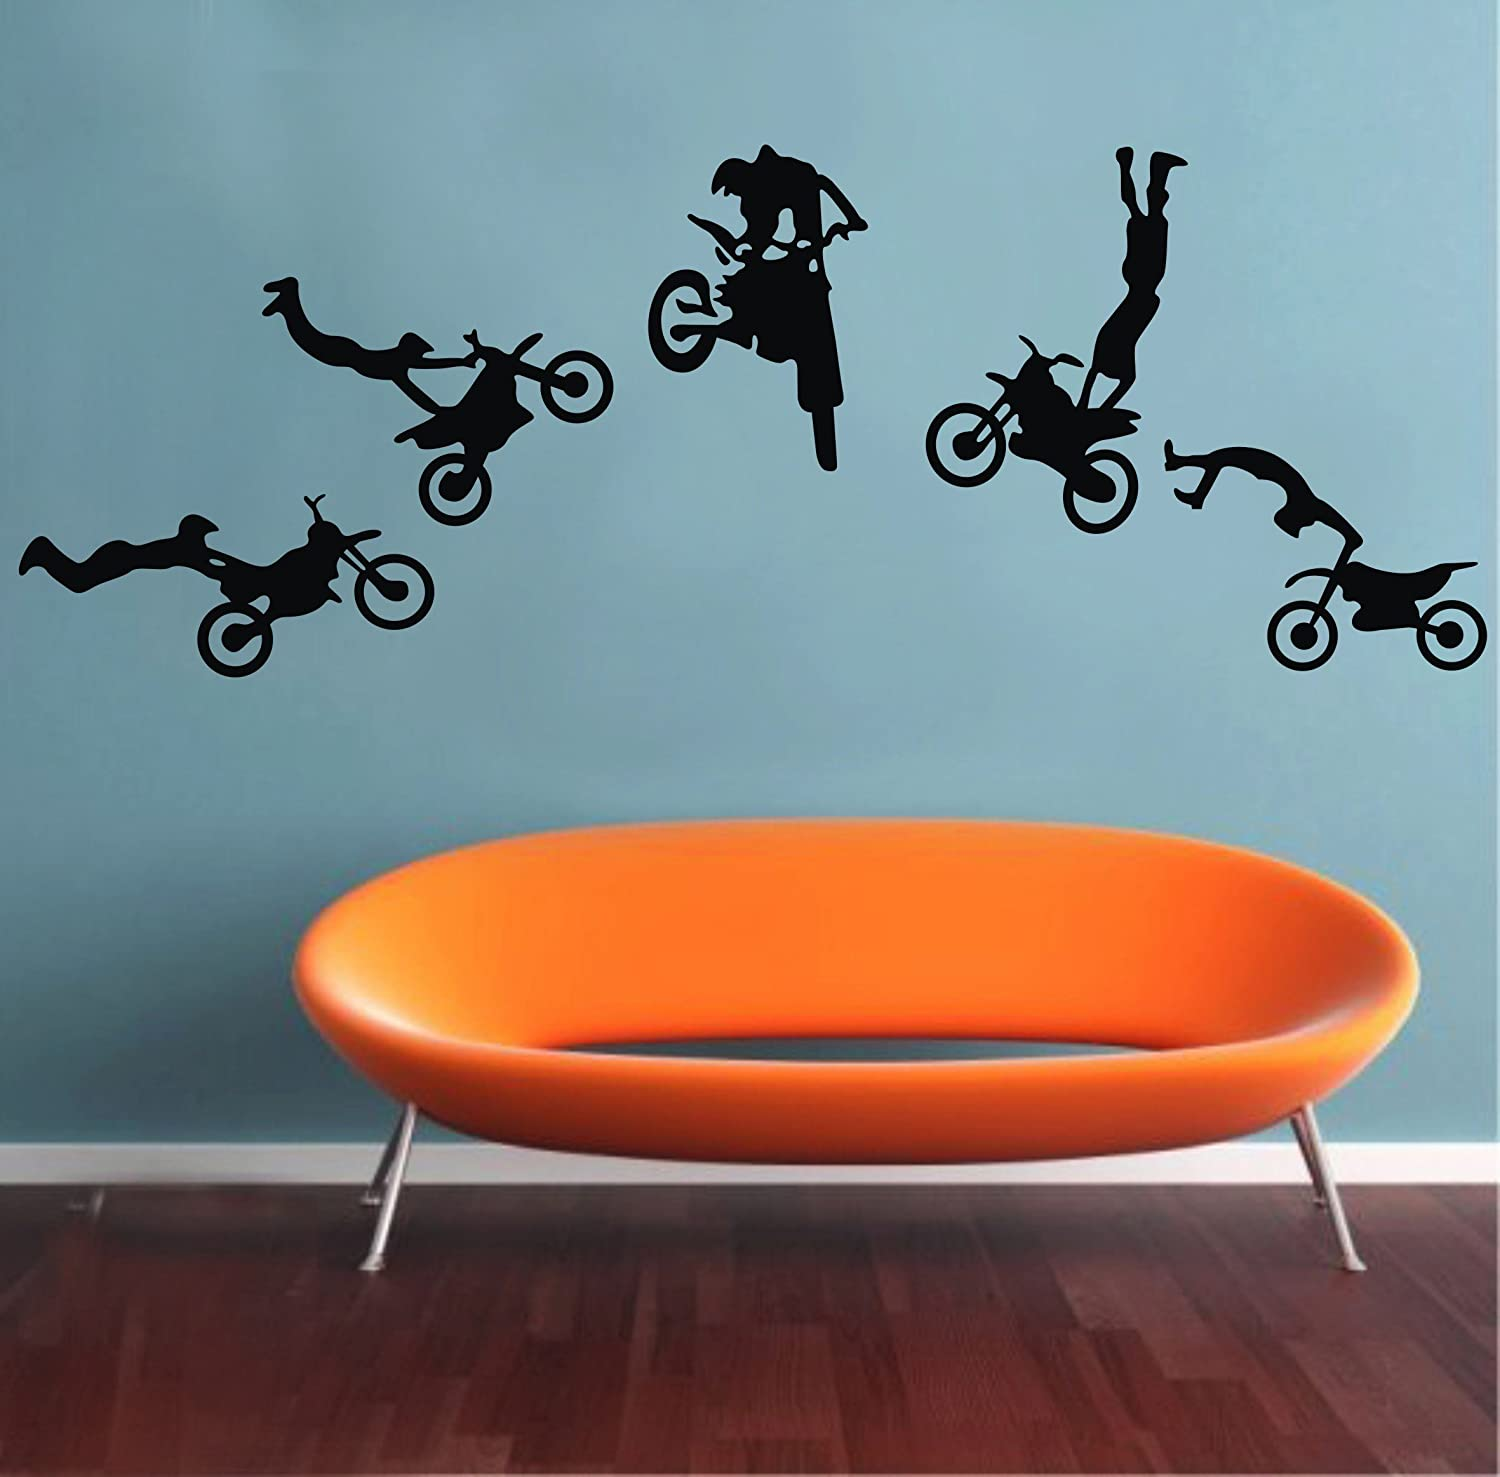 Attirant Amazon.com: Motocross Wall Decals Motocross Graphic Extreme Sport  Silhouette Removable Wall Art DIY Vinyl Wall Sticker: Baby